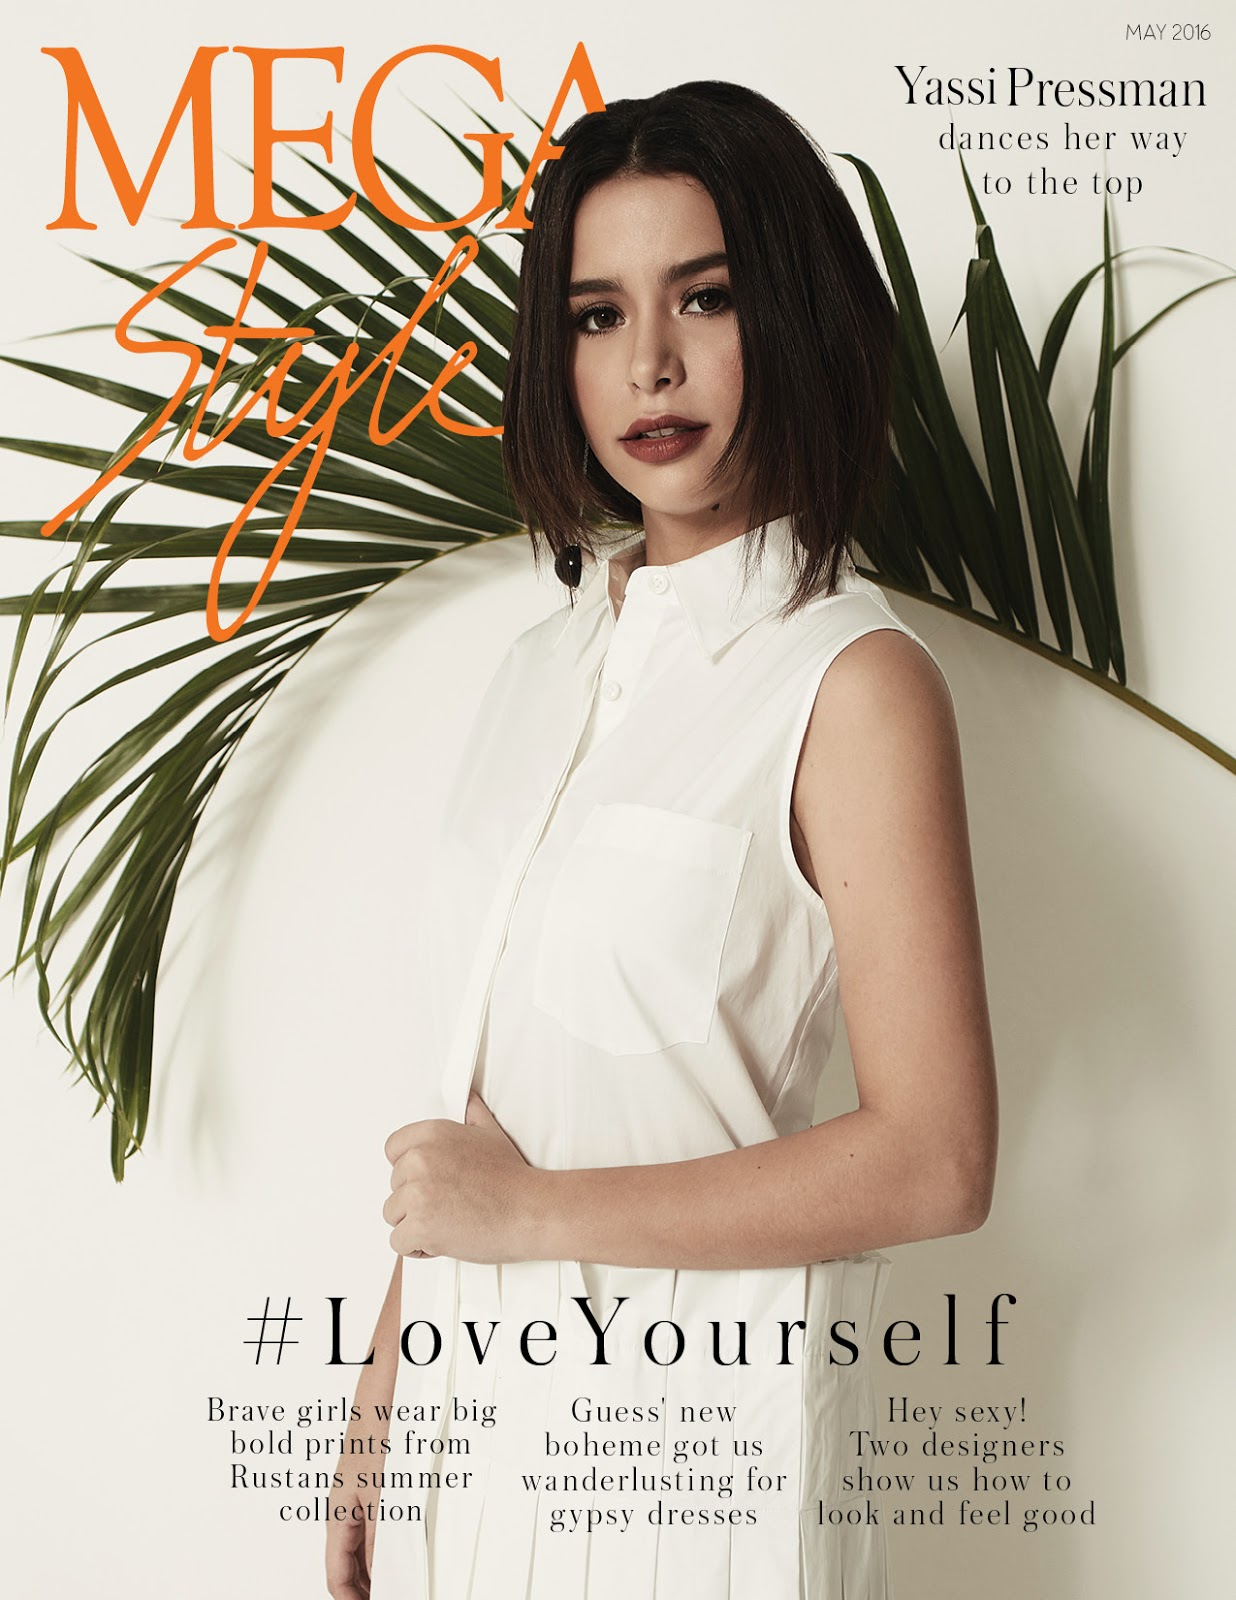 yassi pressman megastyle may 2016 cover fhm fanatics. Black Bedroom Furniture Sets. Home Design Ideas